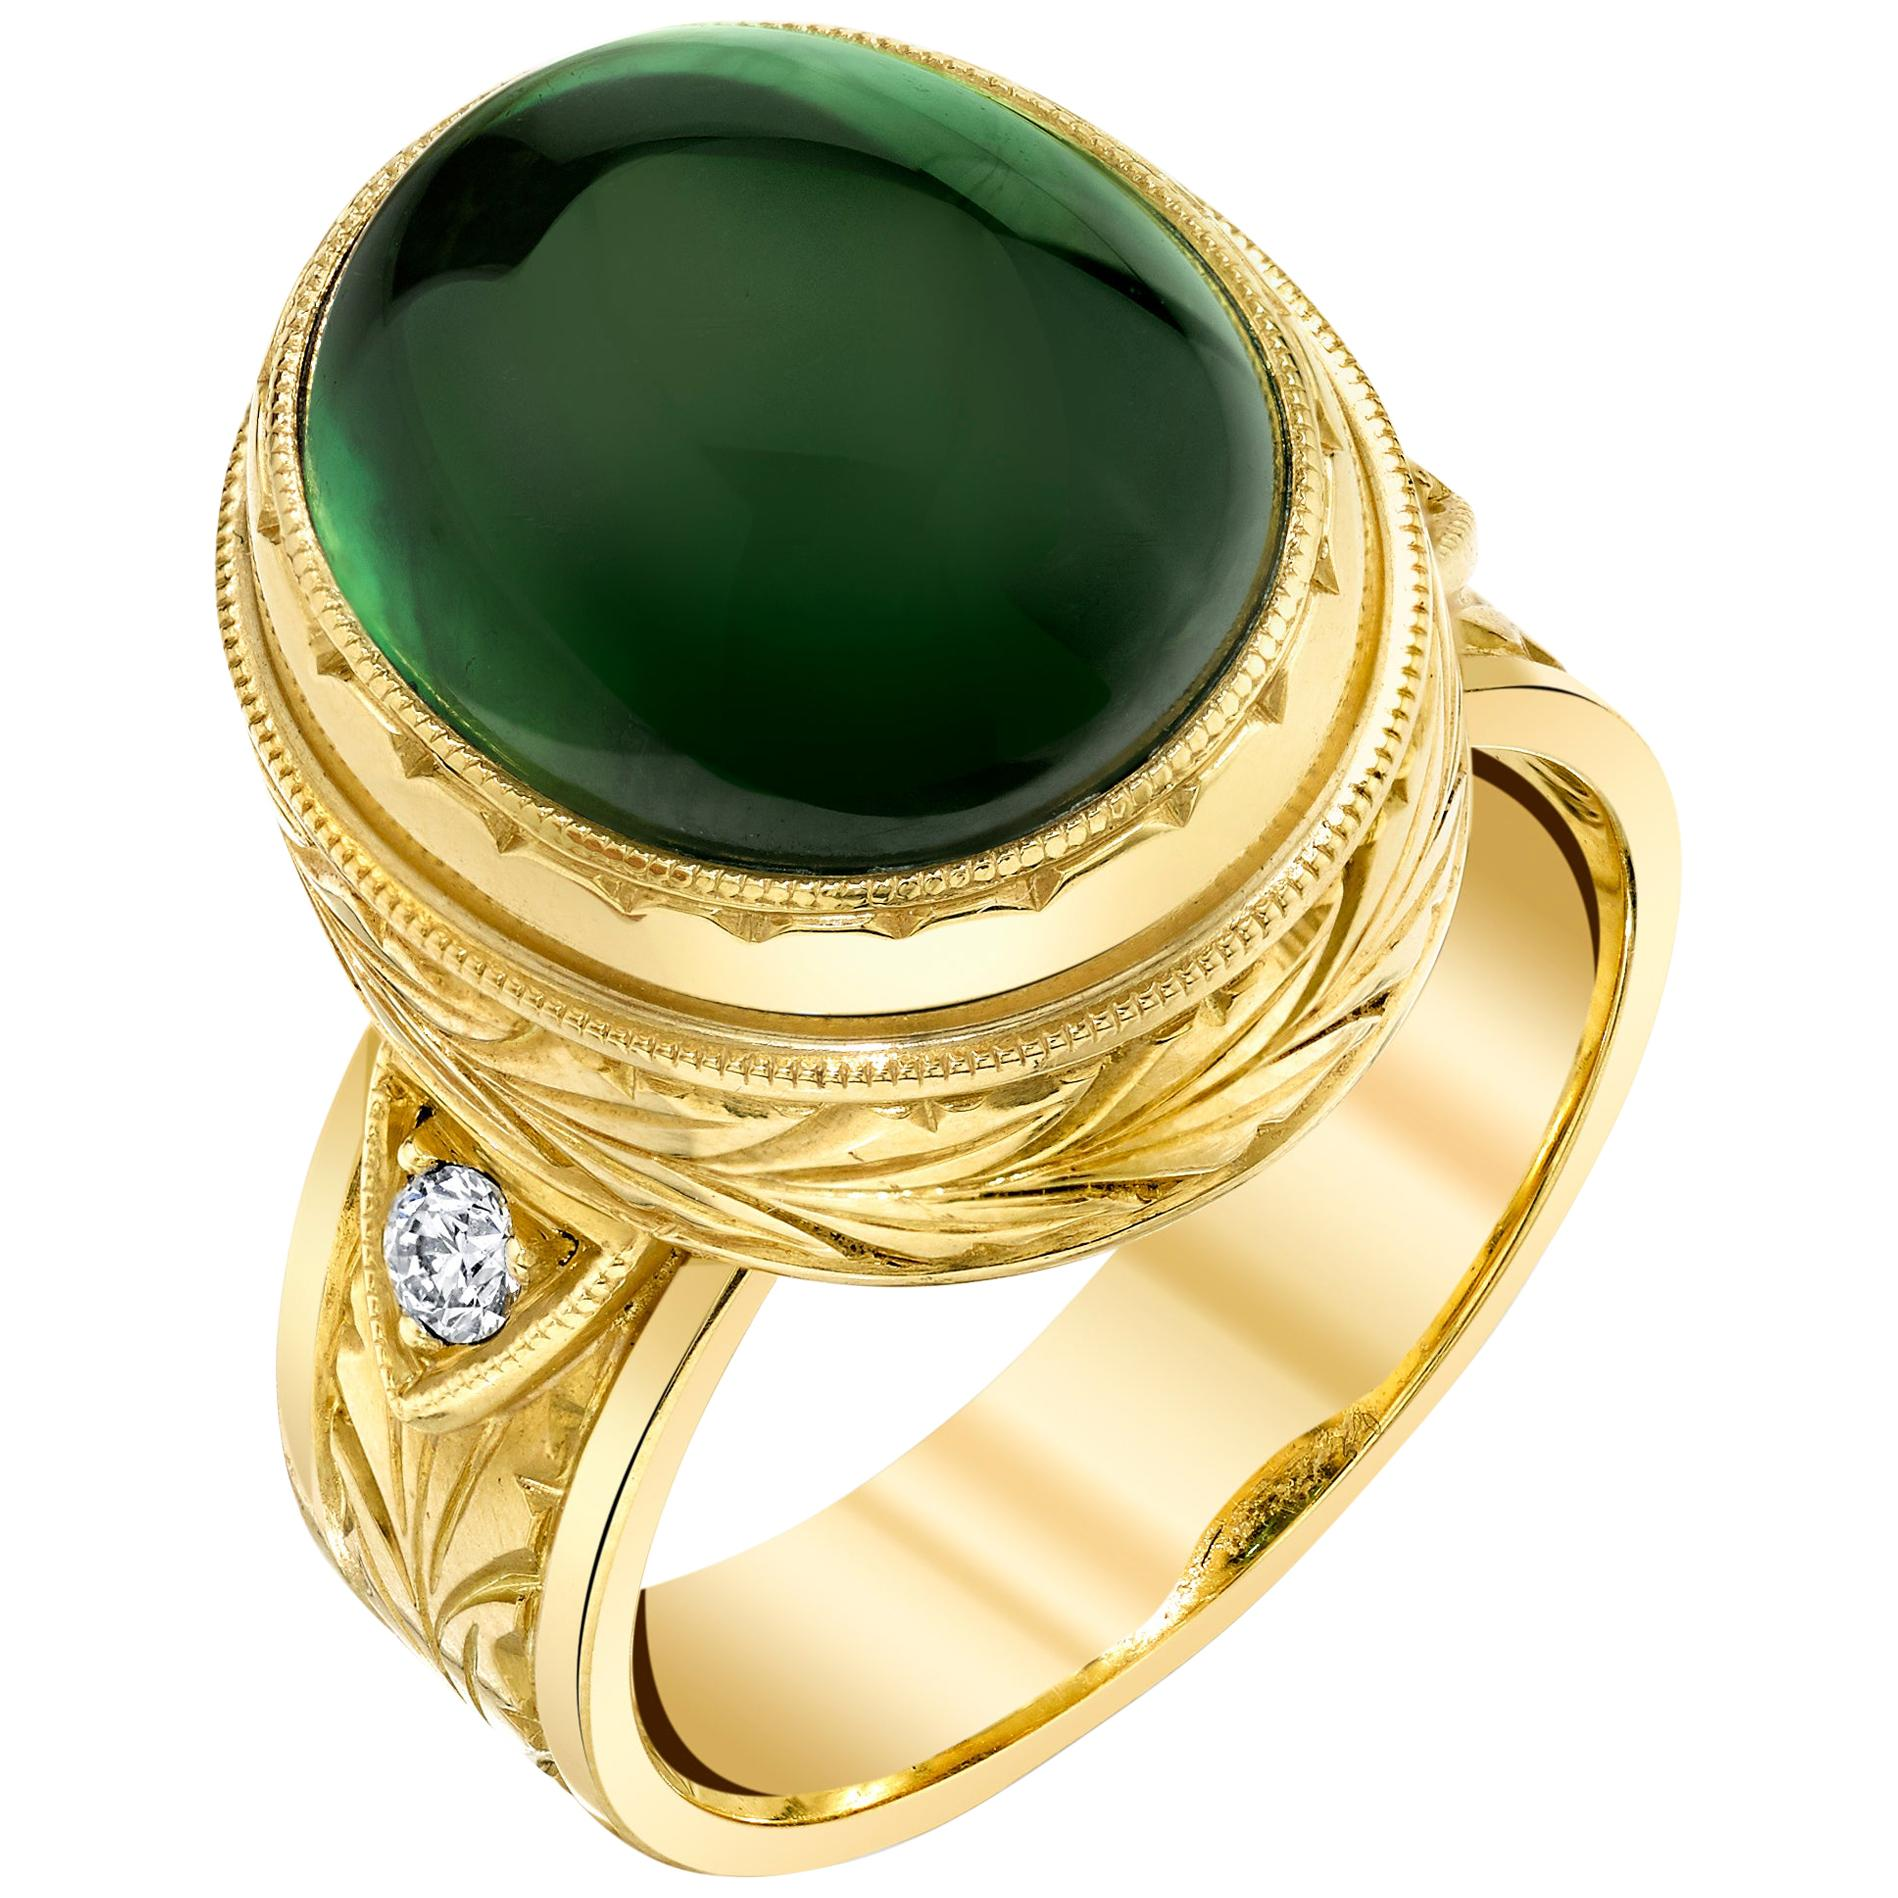 11.28 ct. Green Tourmaline Cabochon, Diamond, Yellow Bezel Dome Band Ring